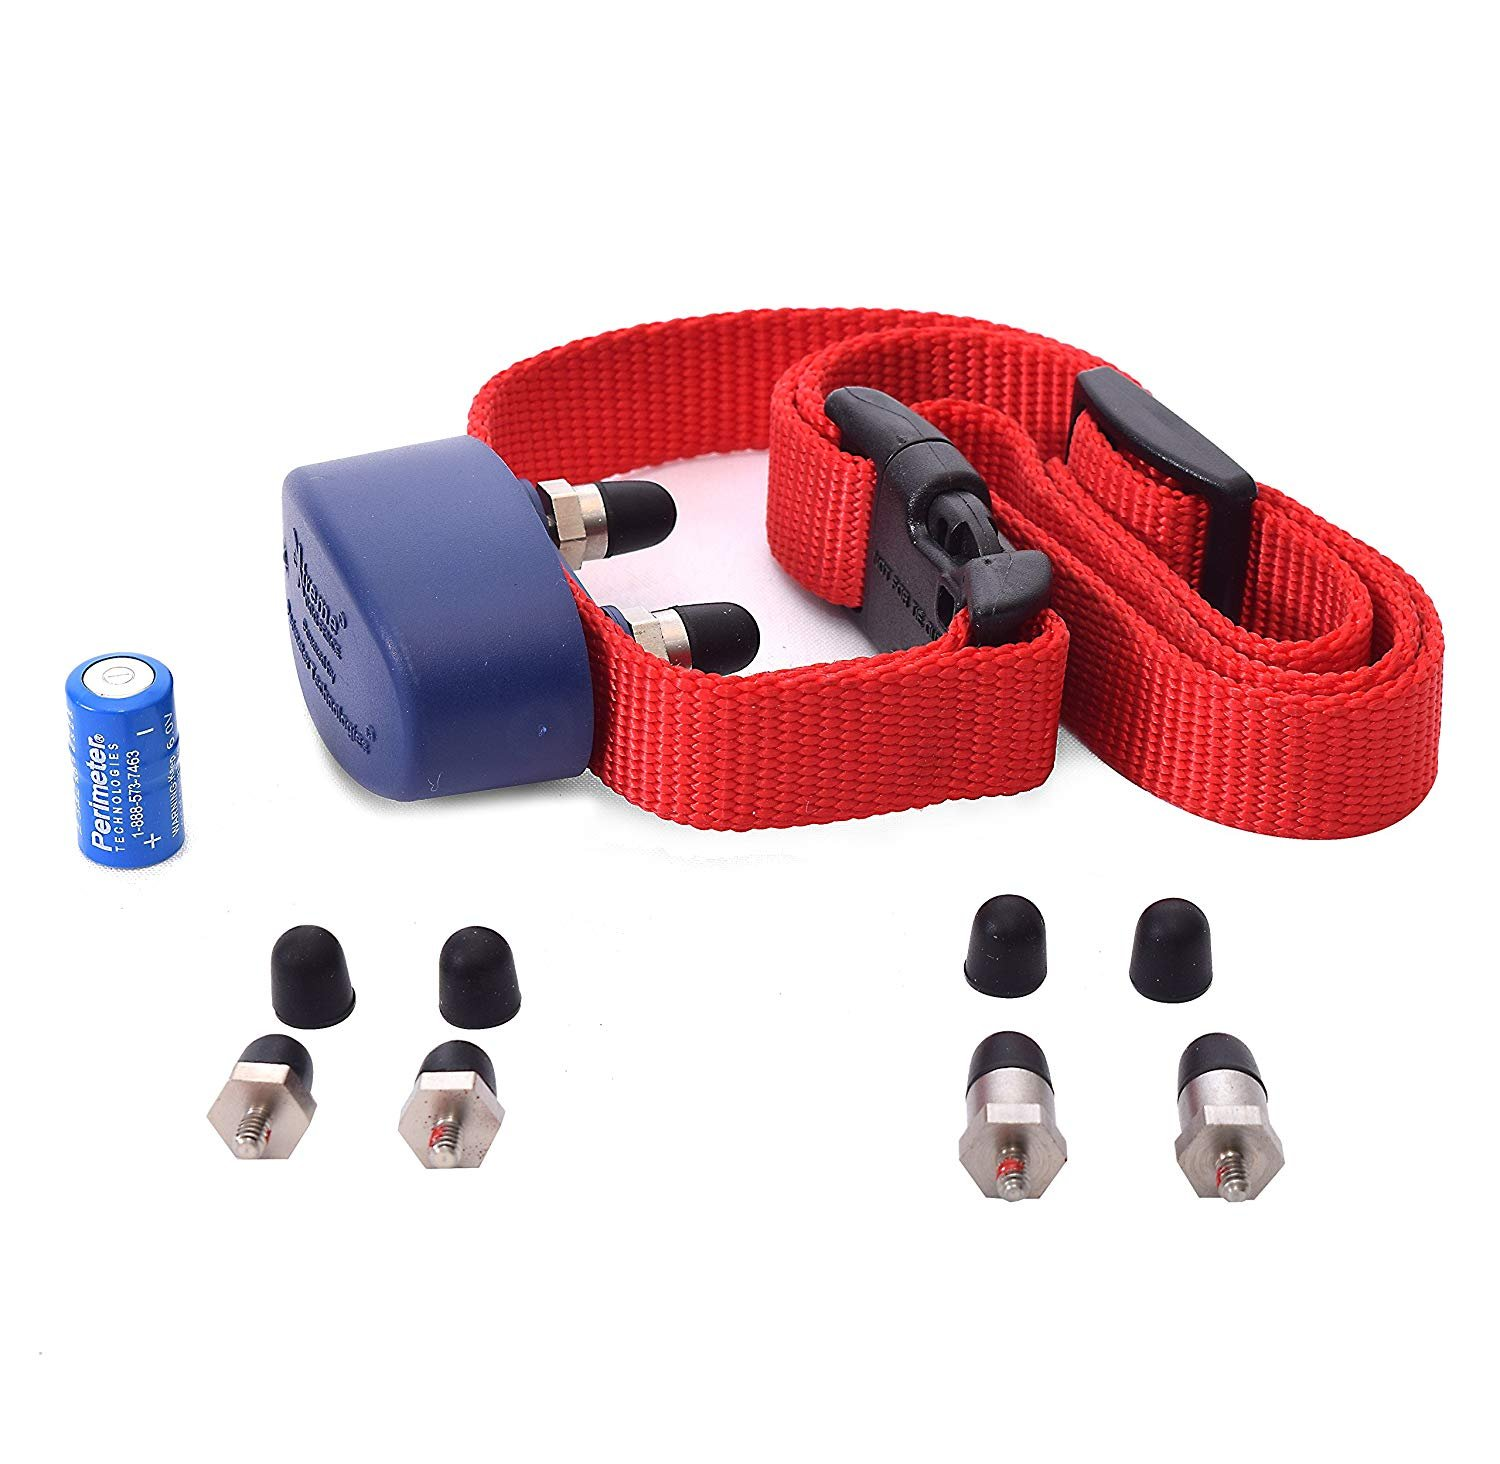 Underground Electric Dog Fence Ultimate 3 Dog Extreme Pro Dog Fence System for Easy Setup and Maximum Longevity and Continued Reliable Pet Safety 2500 Feet Pro Grade Dog Fence Wire